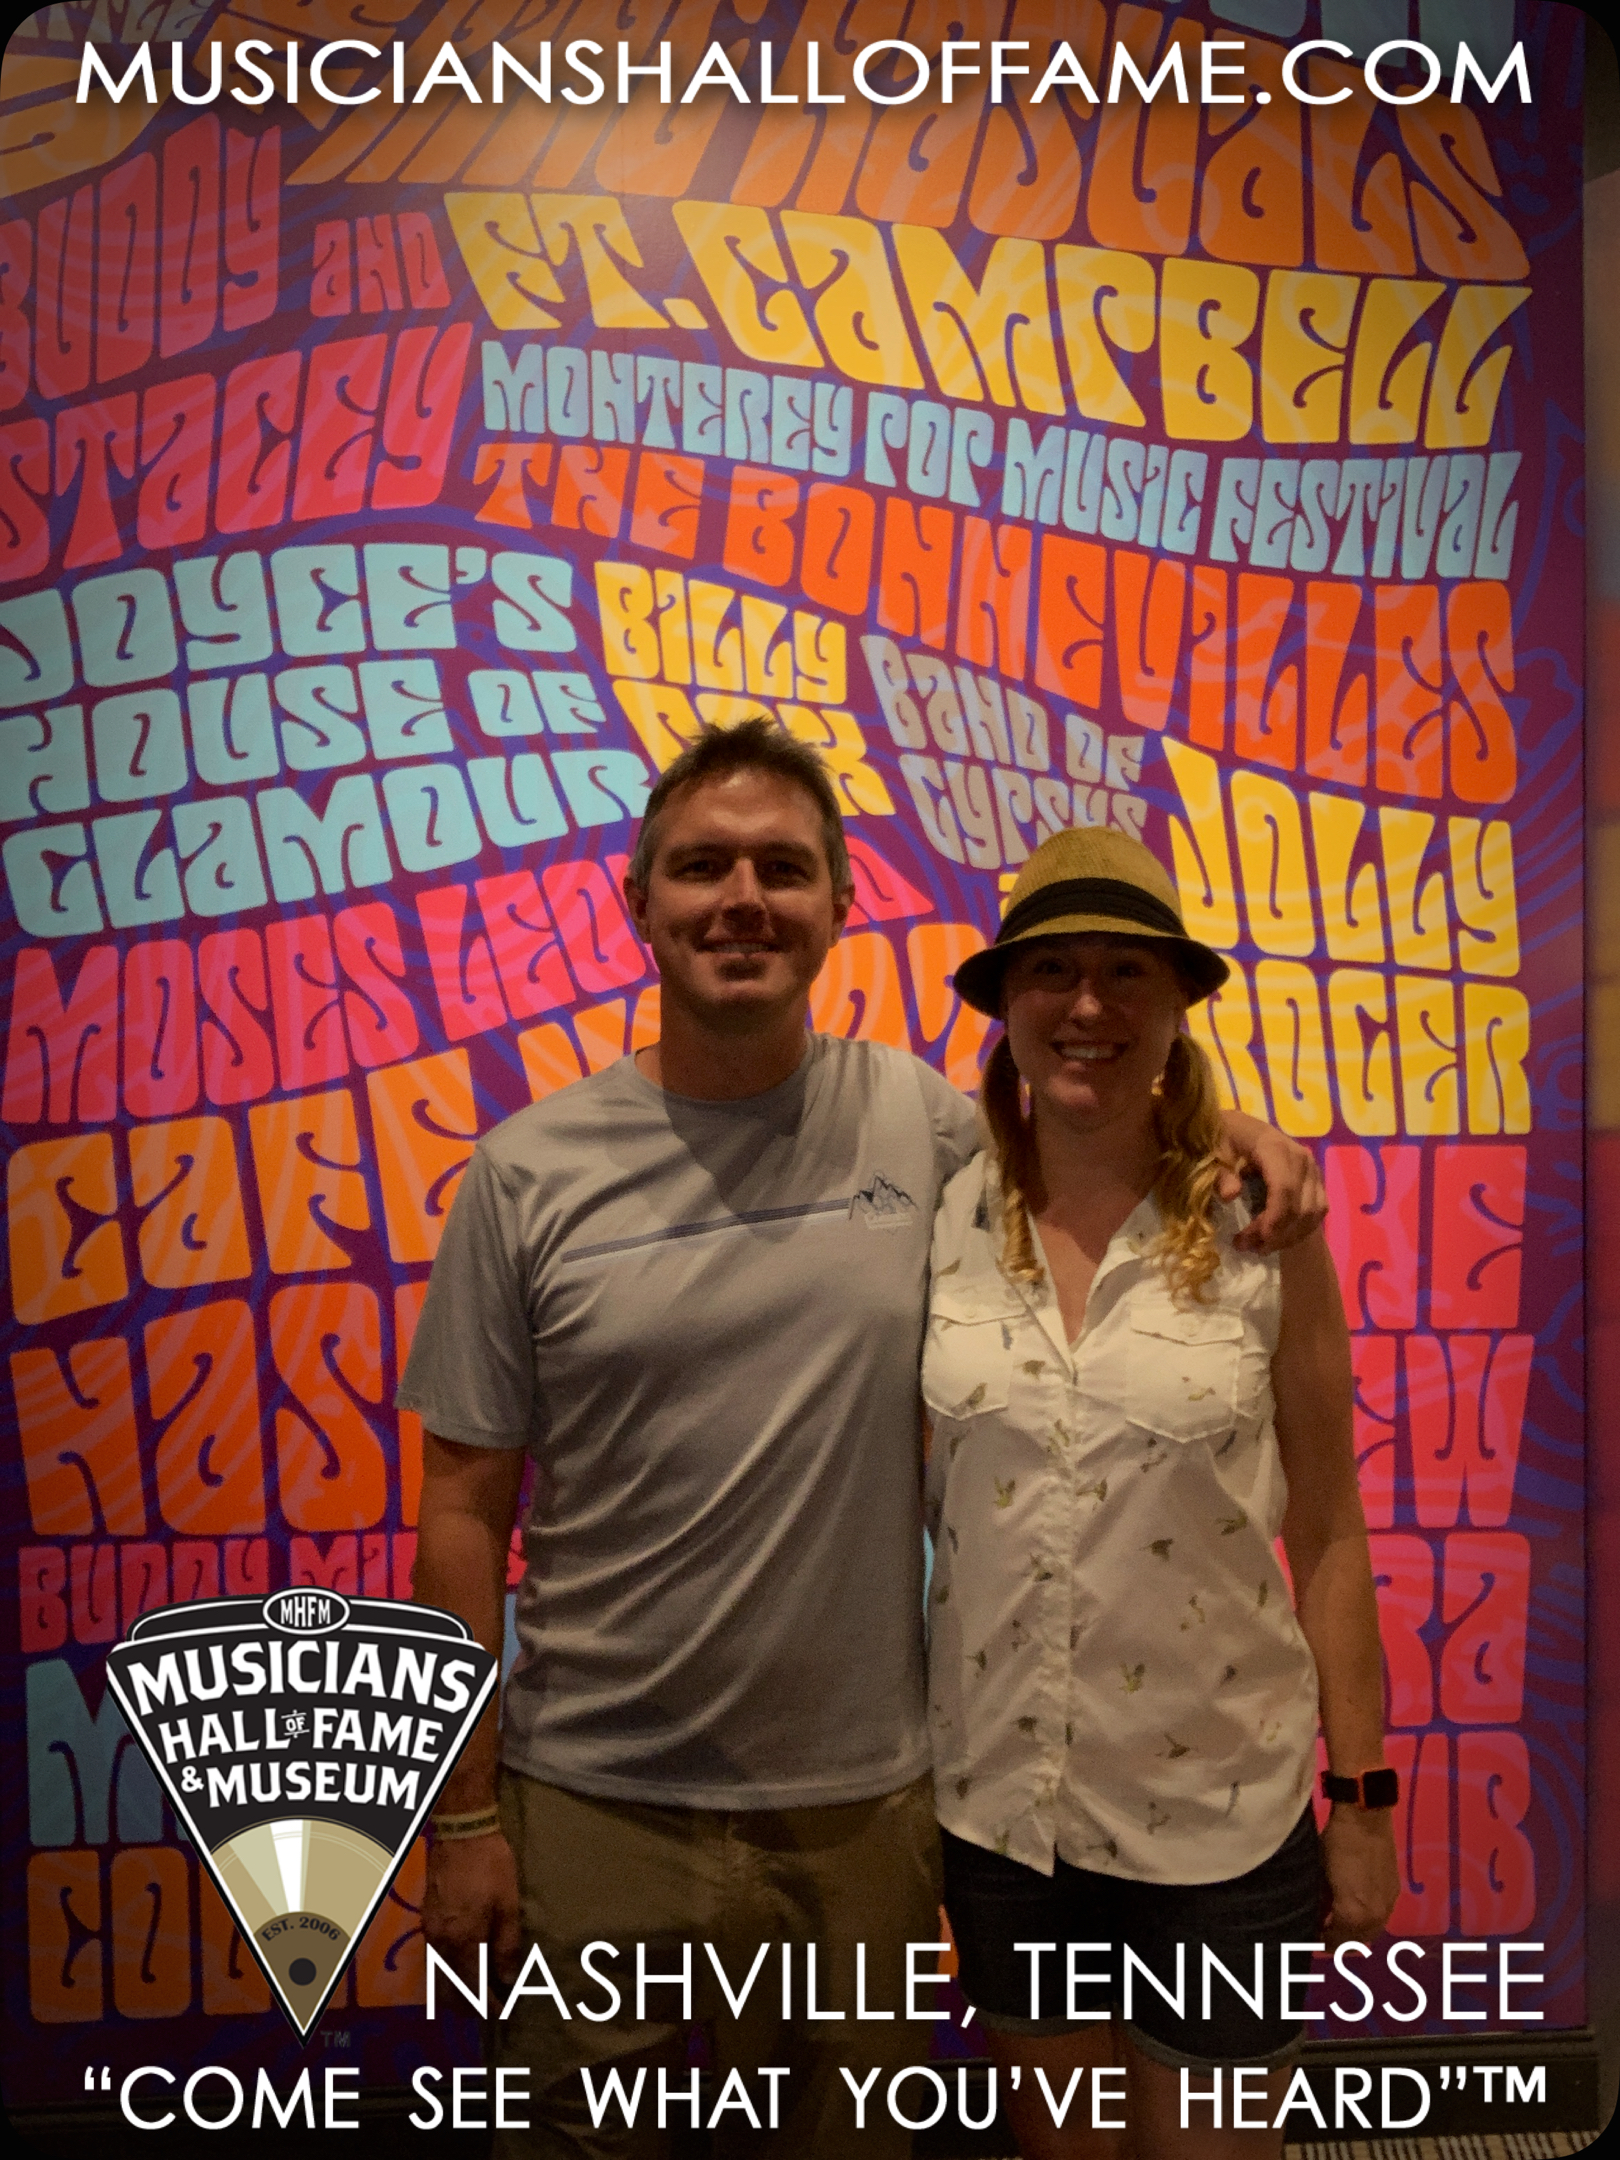 Us at the Musicians Hall of Fame & Museum